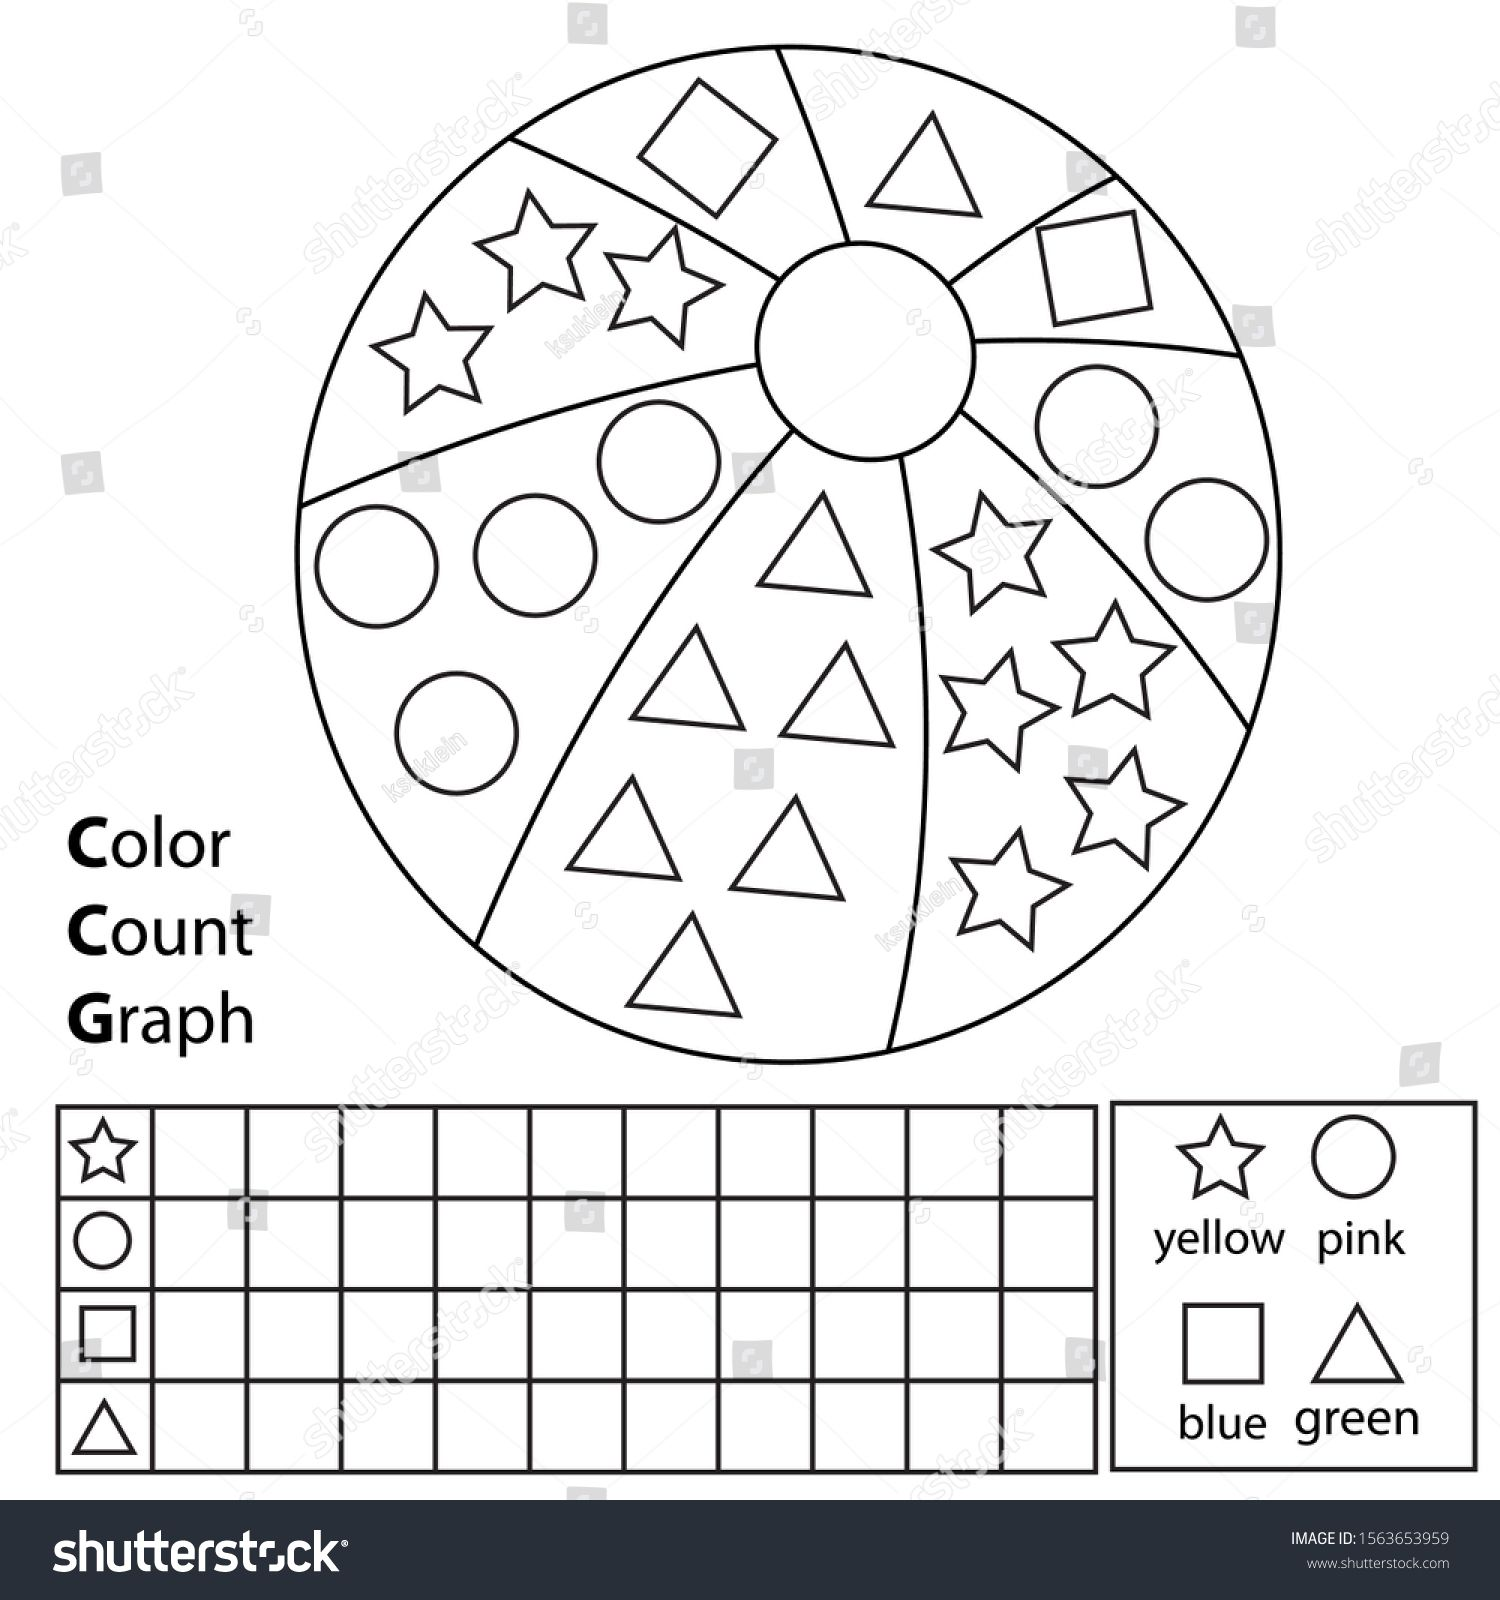 Color Count And Graph Educational Children Game Color Ball And Counting Shapes Printa Shapes Worksheets Kids Worksheets Printables Preschool Coloring Pages